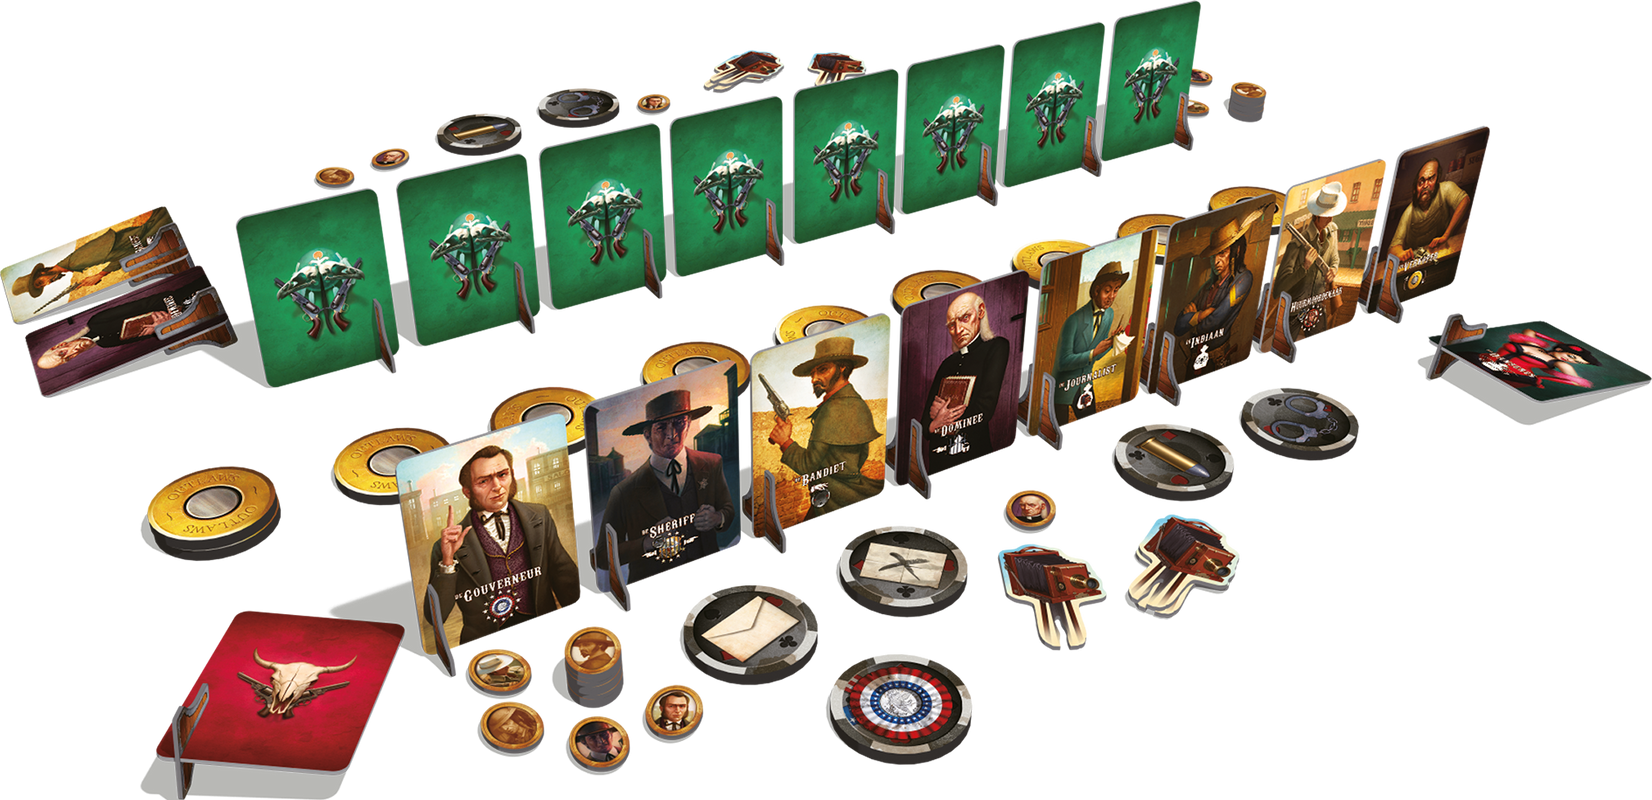 Outlaws: Last Man Standing components